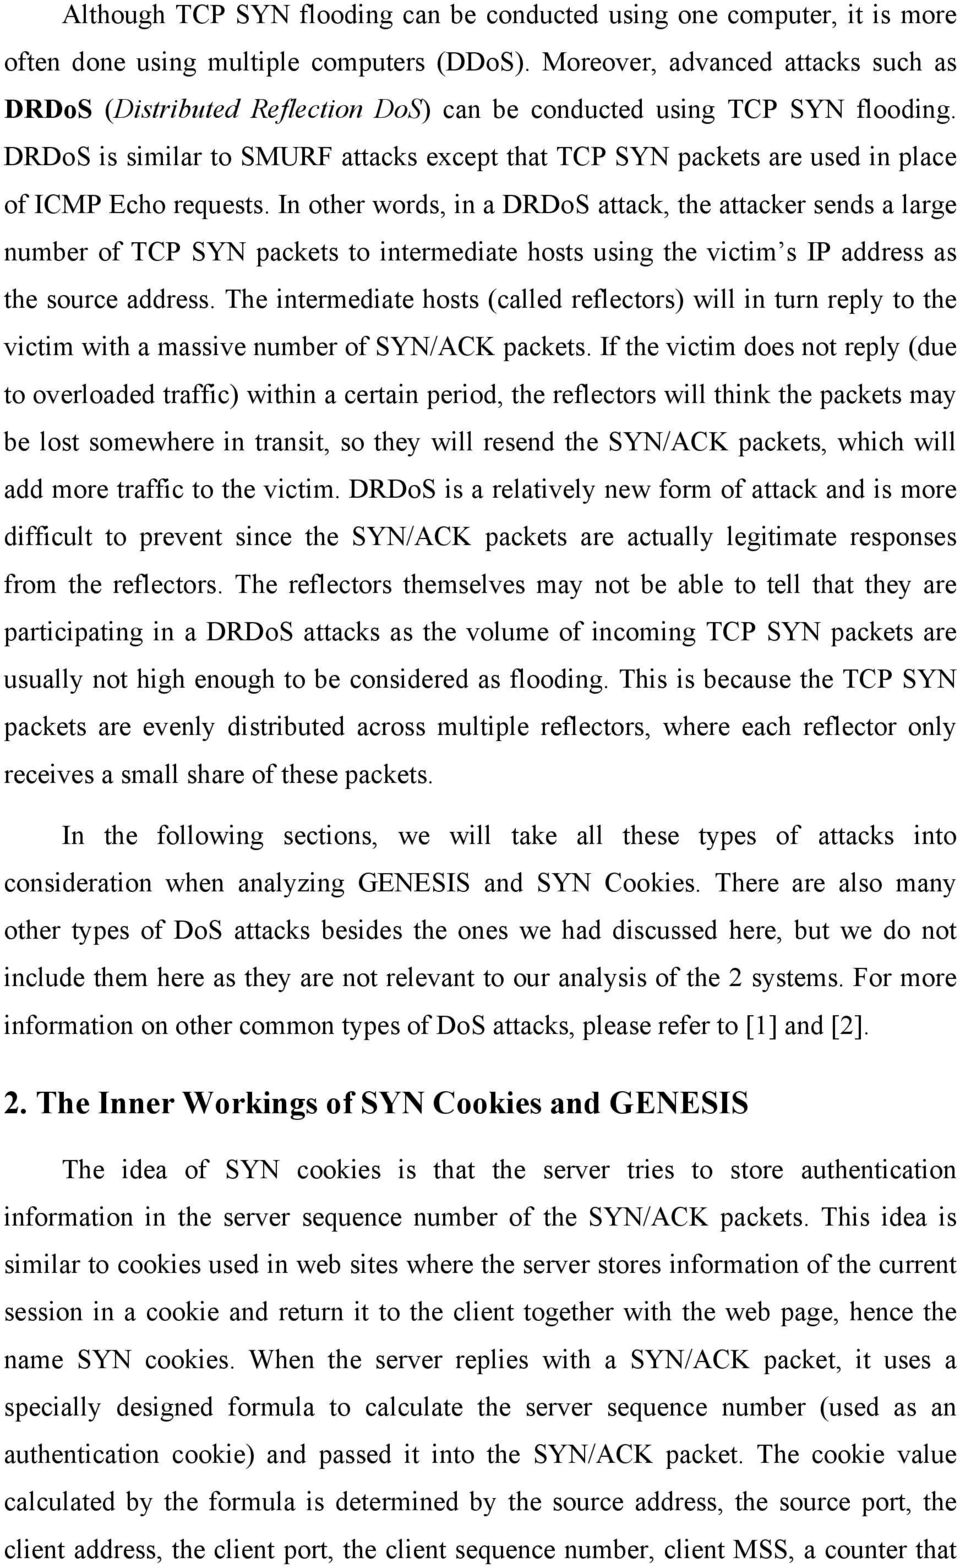 DRDoS is similar to SMURF attacks except that TCP SYN packets are used in place of ICMP Echo requests.